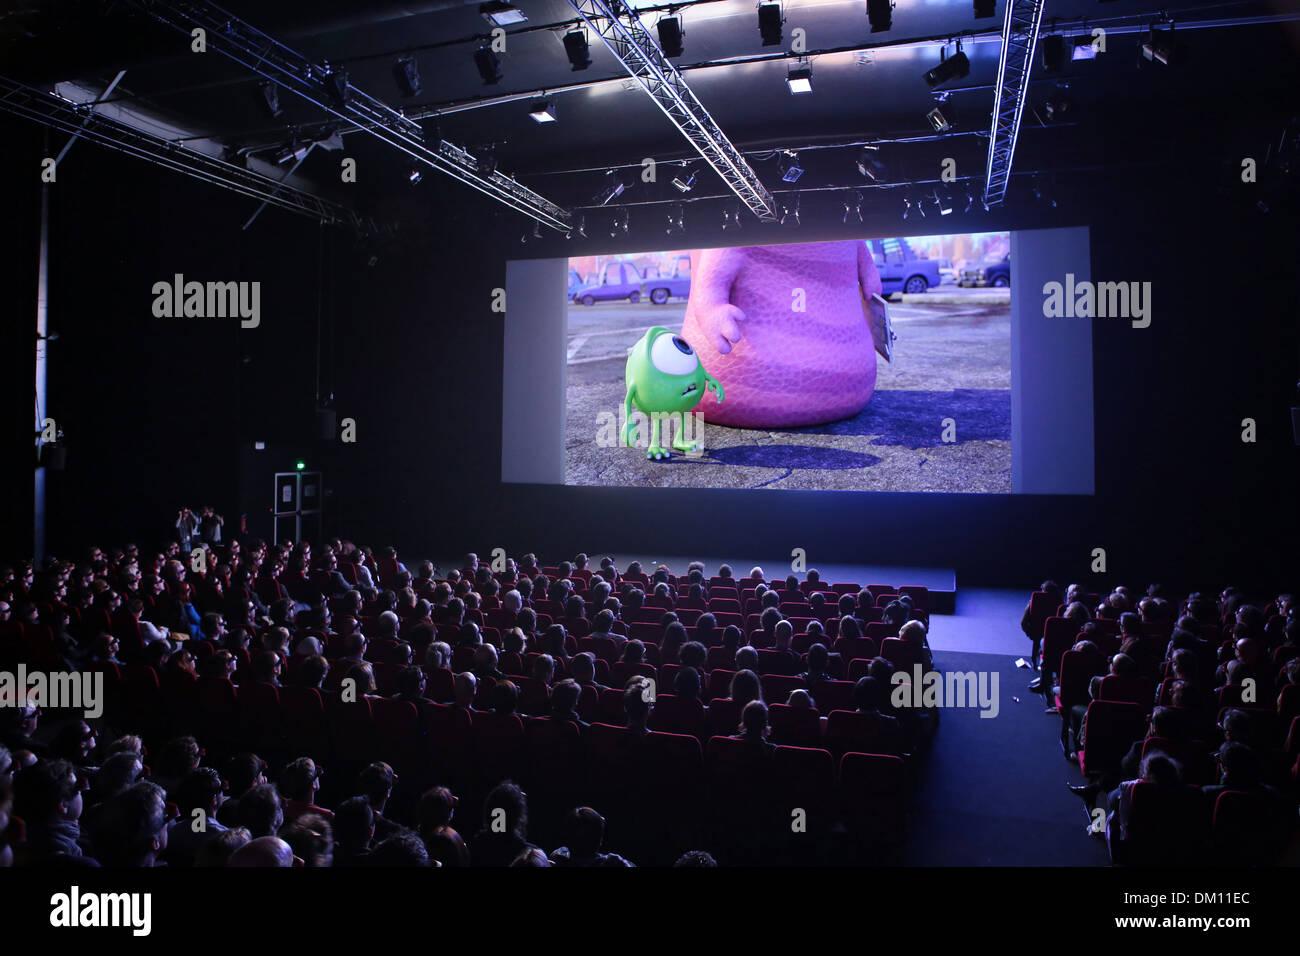 Annecy: opening of the Annecy International Animation Film Festival (2013/06/10) - Stock Image